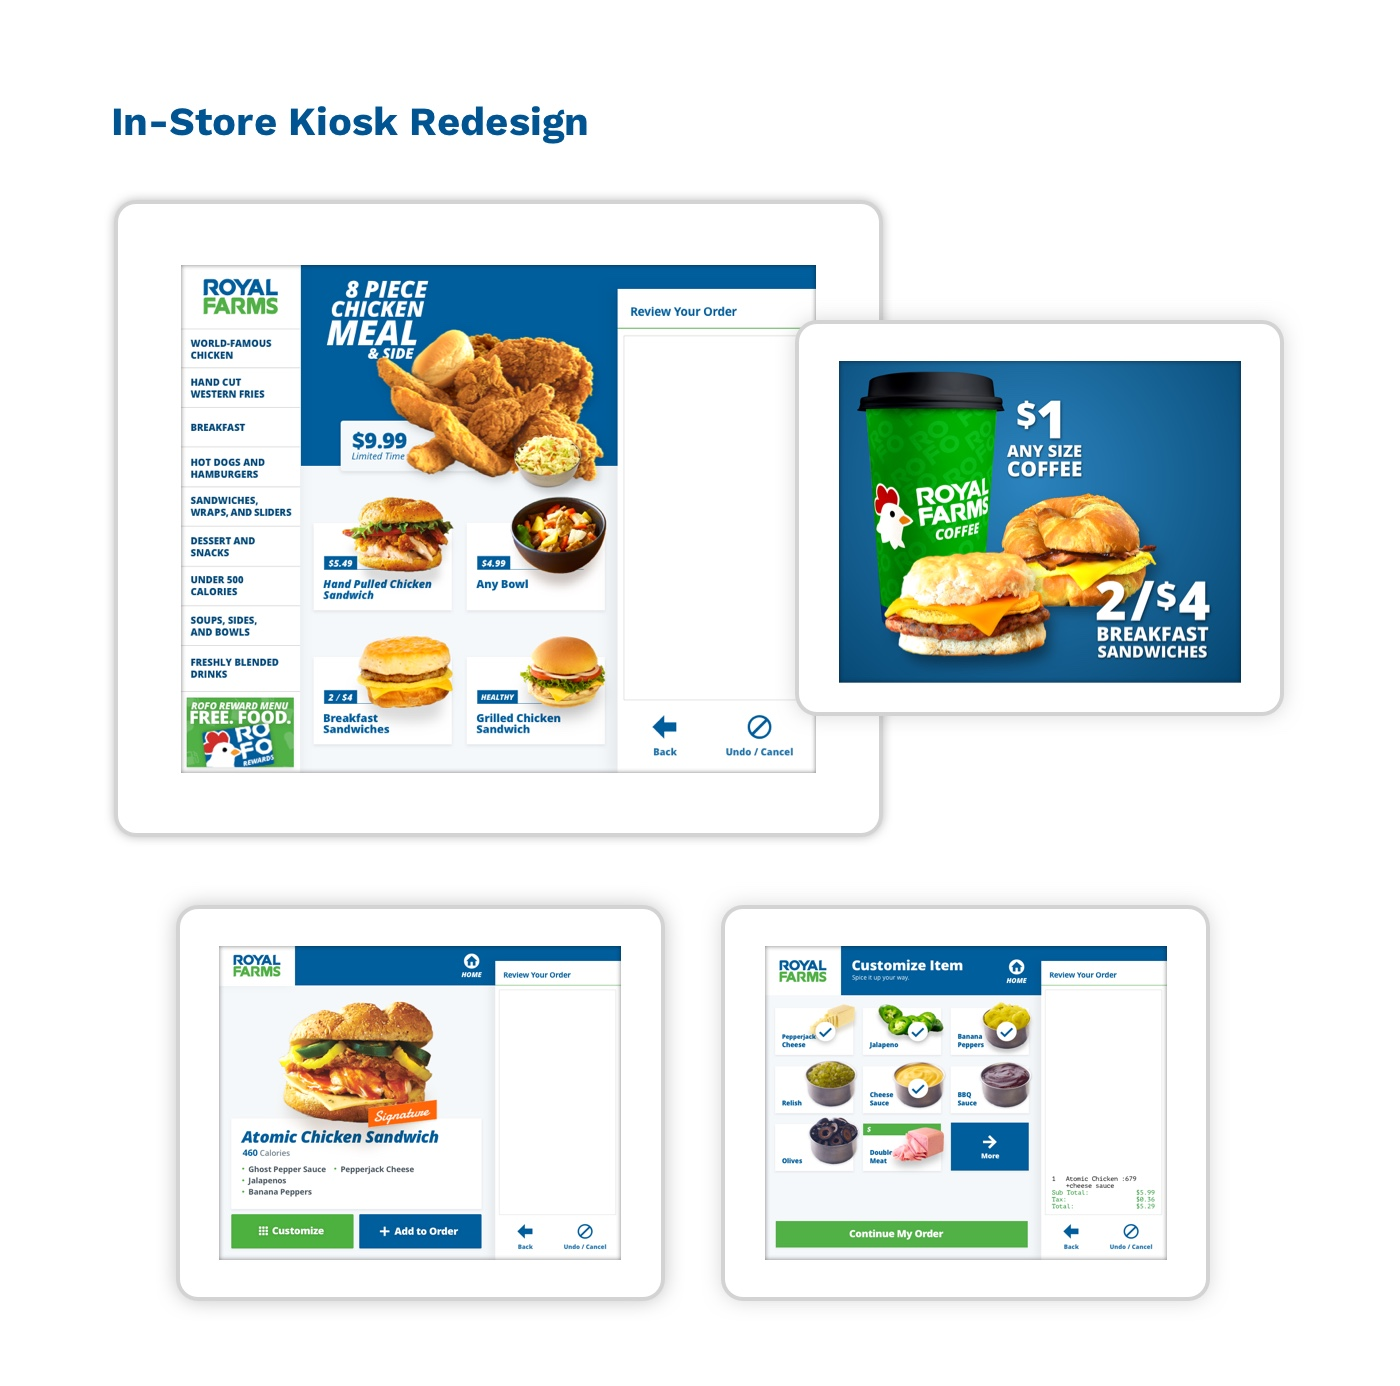 The new Royal Farms kiosk screens